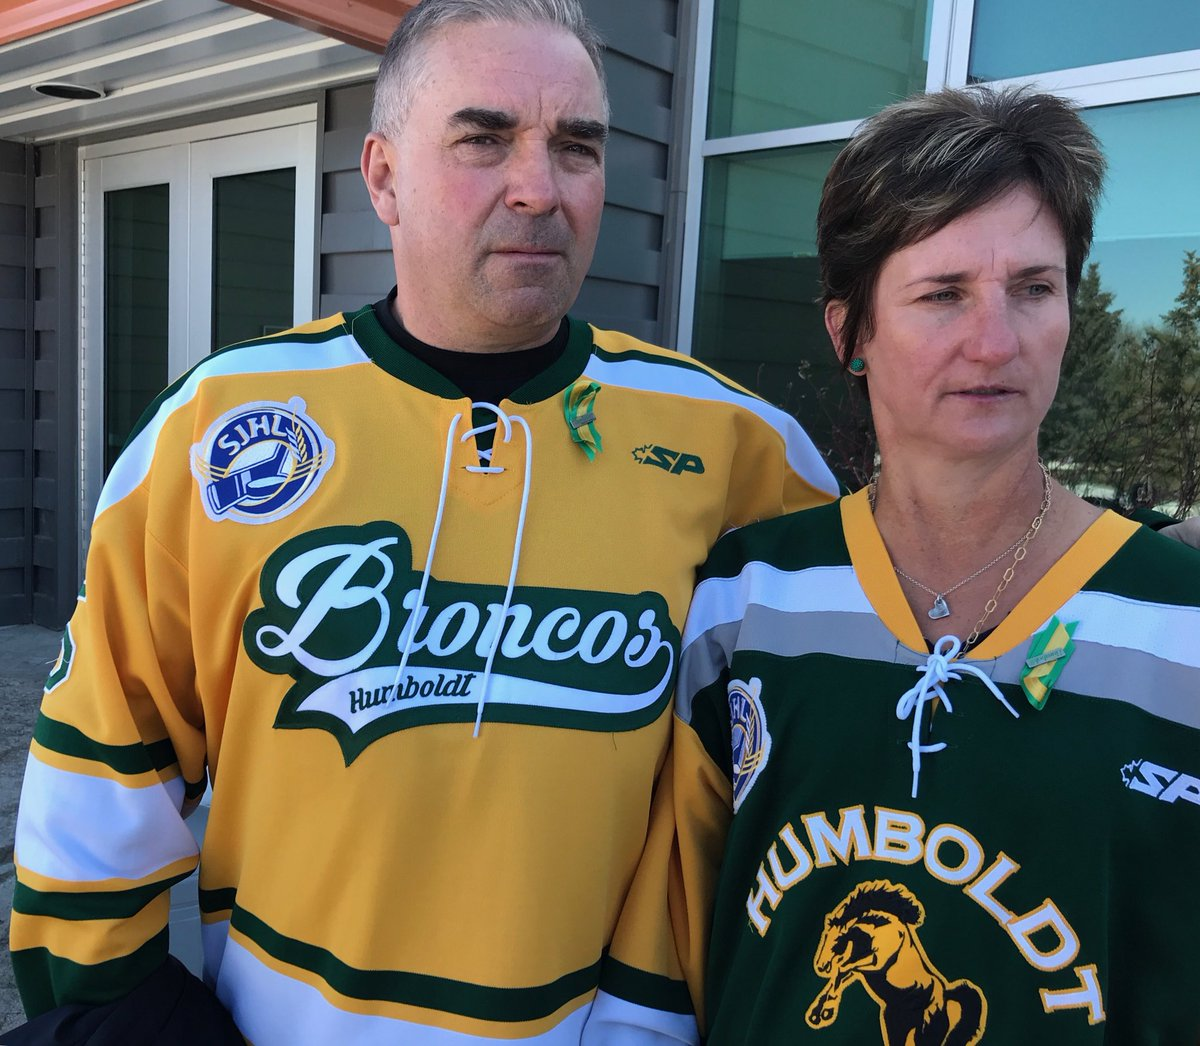 """It doesn't change anything, Adam's not coming back. It was so preventable; now we have a life sentence"", Russ and Raelene Herold on Broncos sentencing - driver Sidhu sentenced to 8 years ⁦@HumboldtBroncos⁩ ⁦@CBCTheNational⁩"